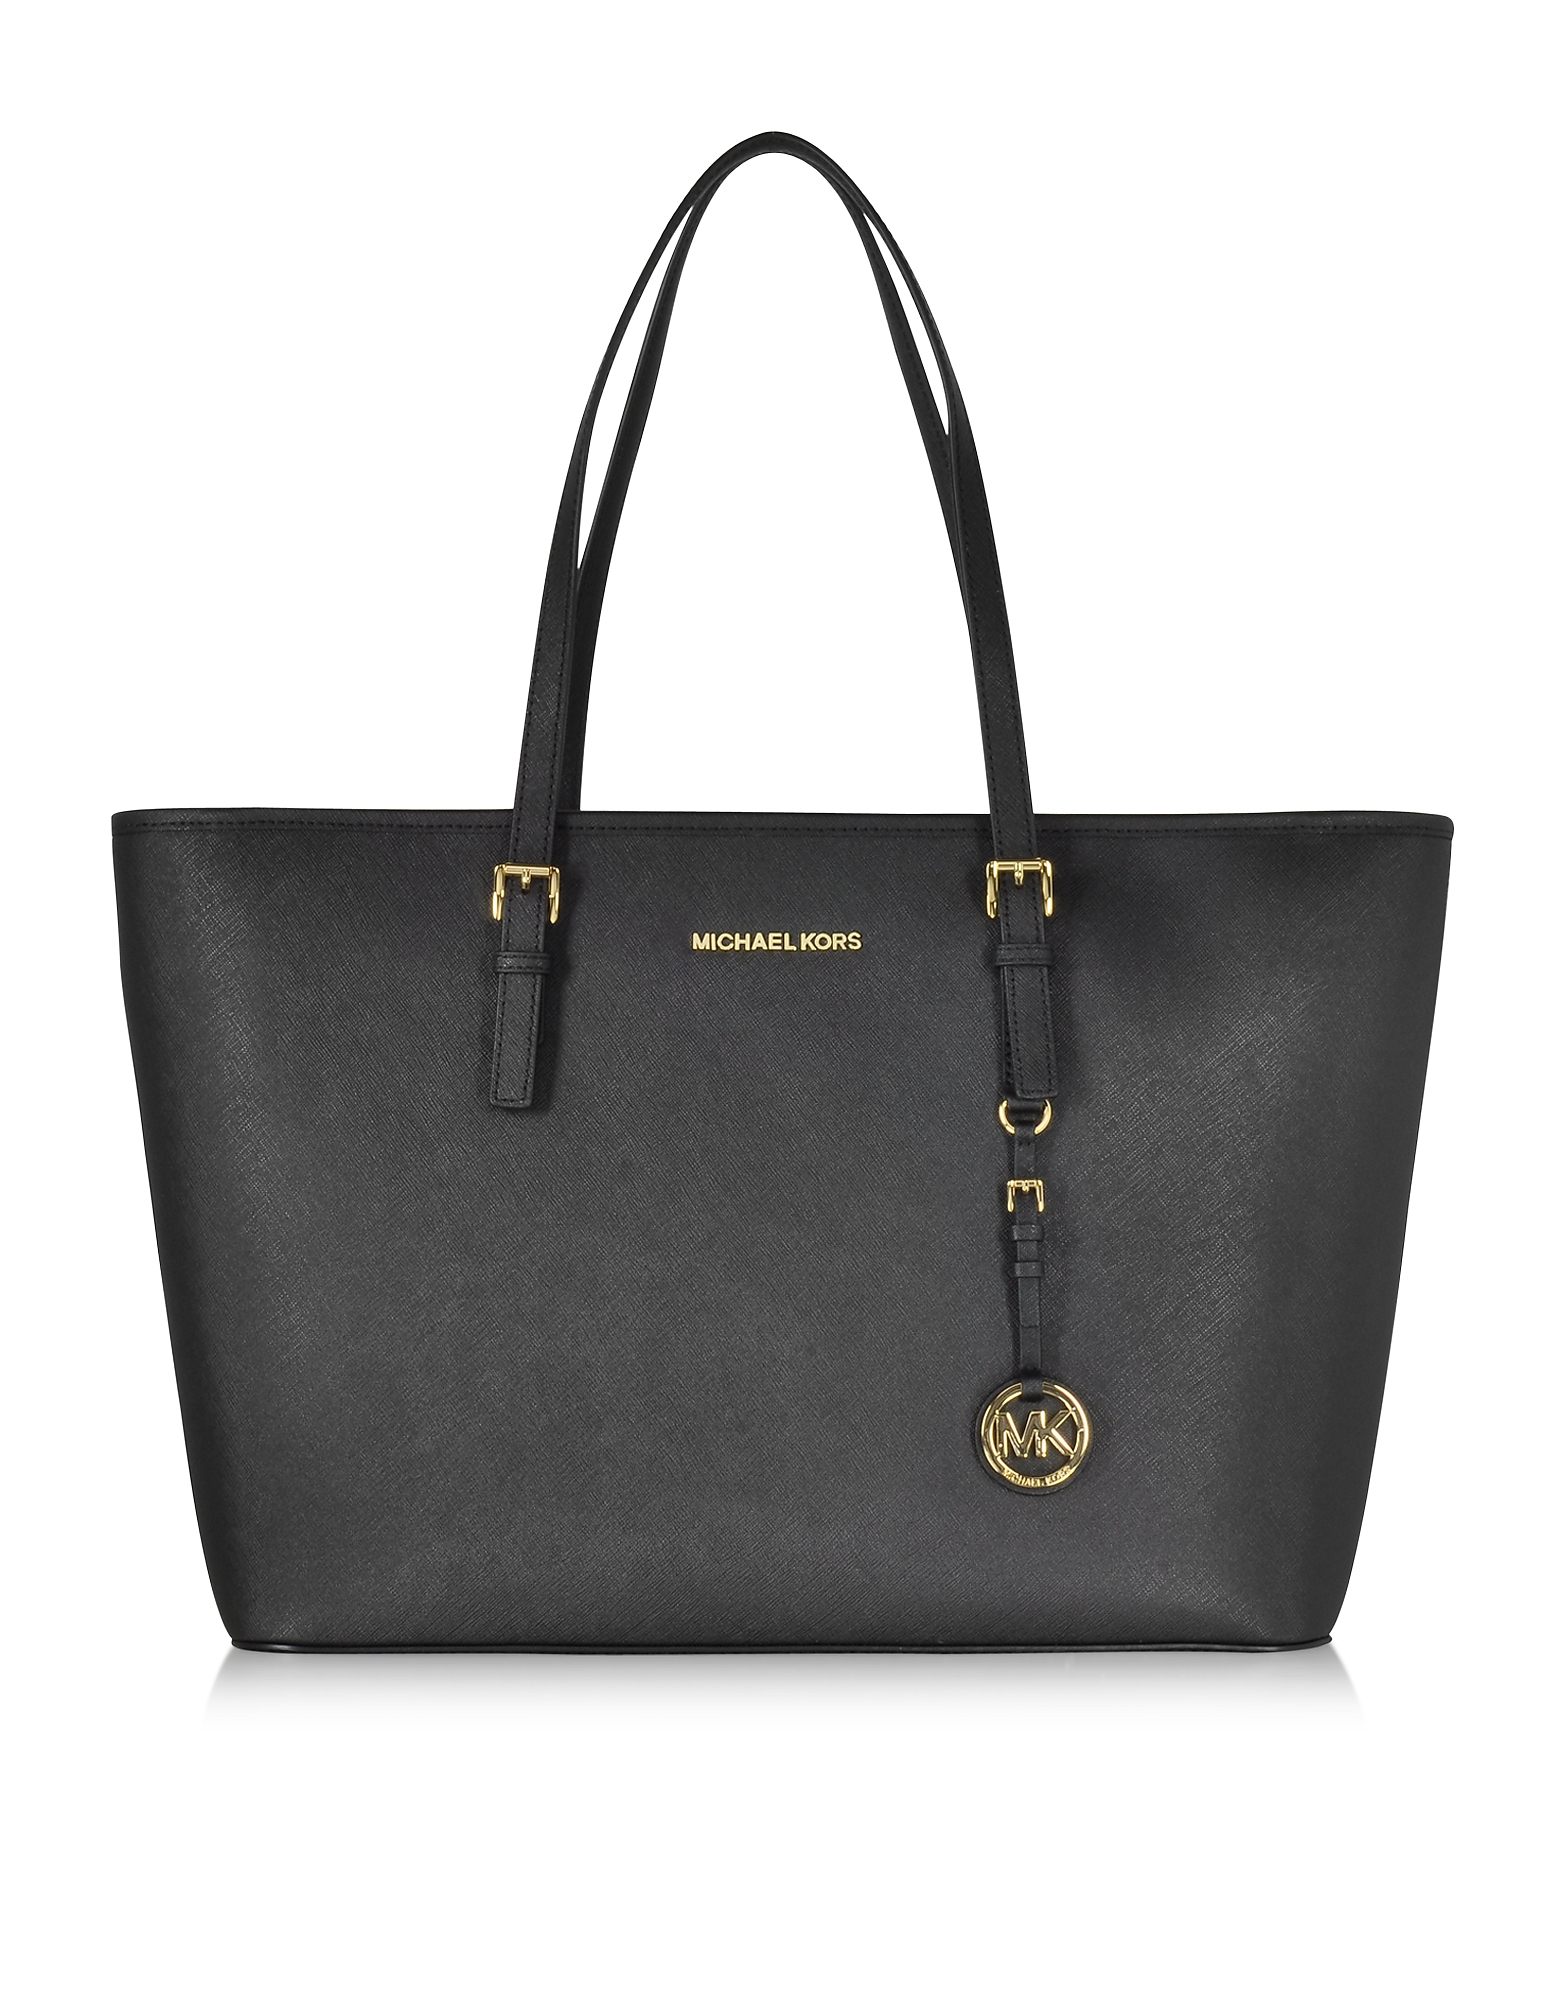 Michael Kors Handbags, Black Jet Set Travel Saffiano Leather Medium T Z Tote